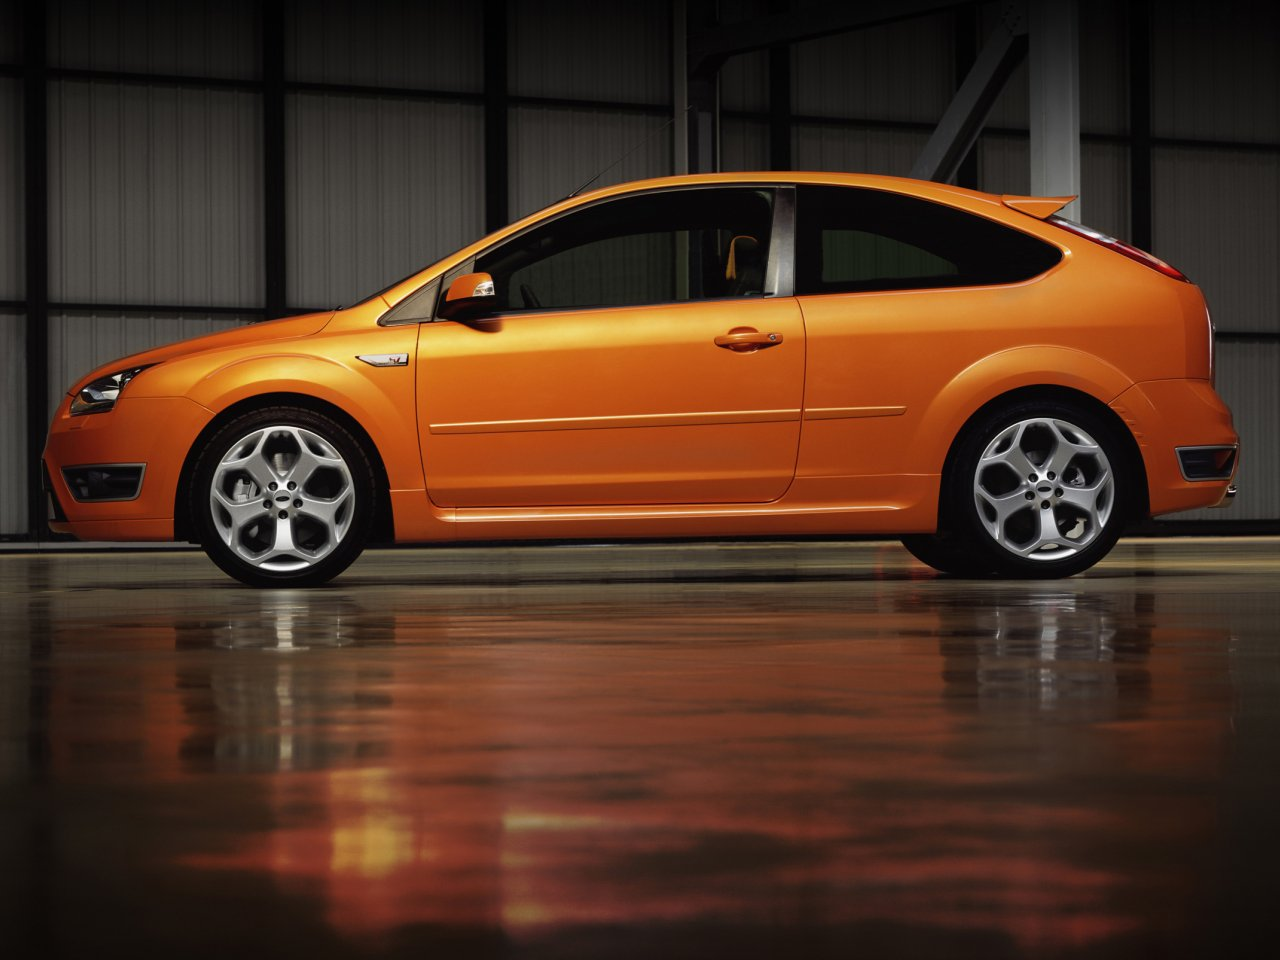 Photoshop of the 08 Focus-ford-focus-st-4.jpg